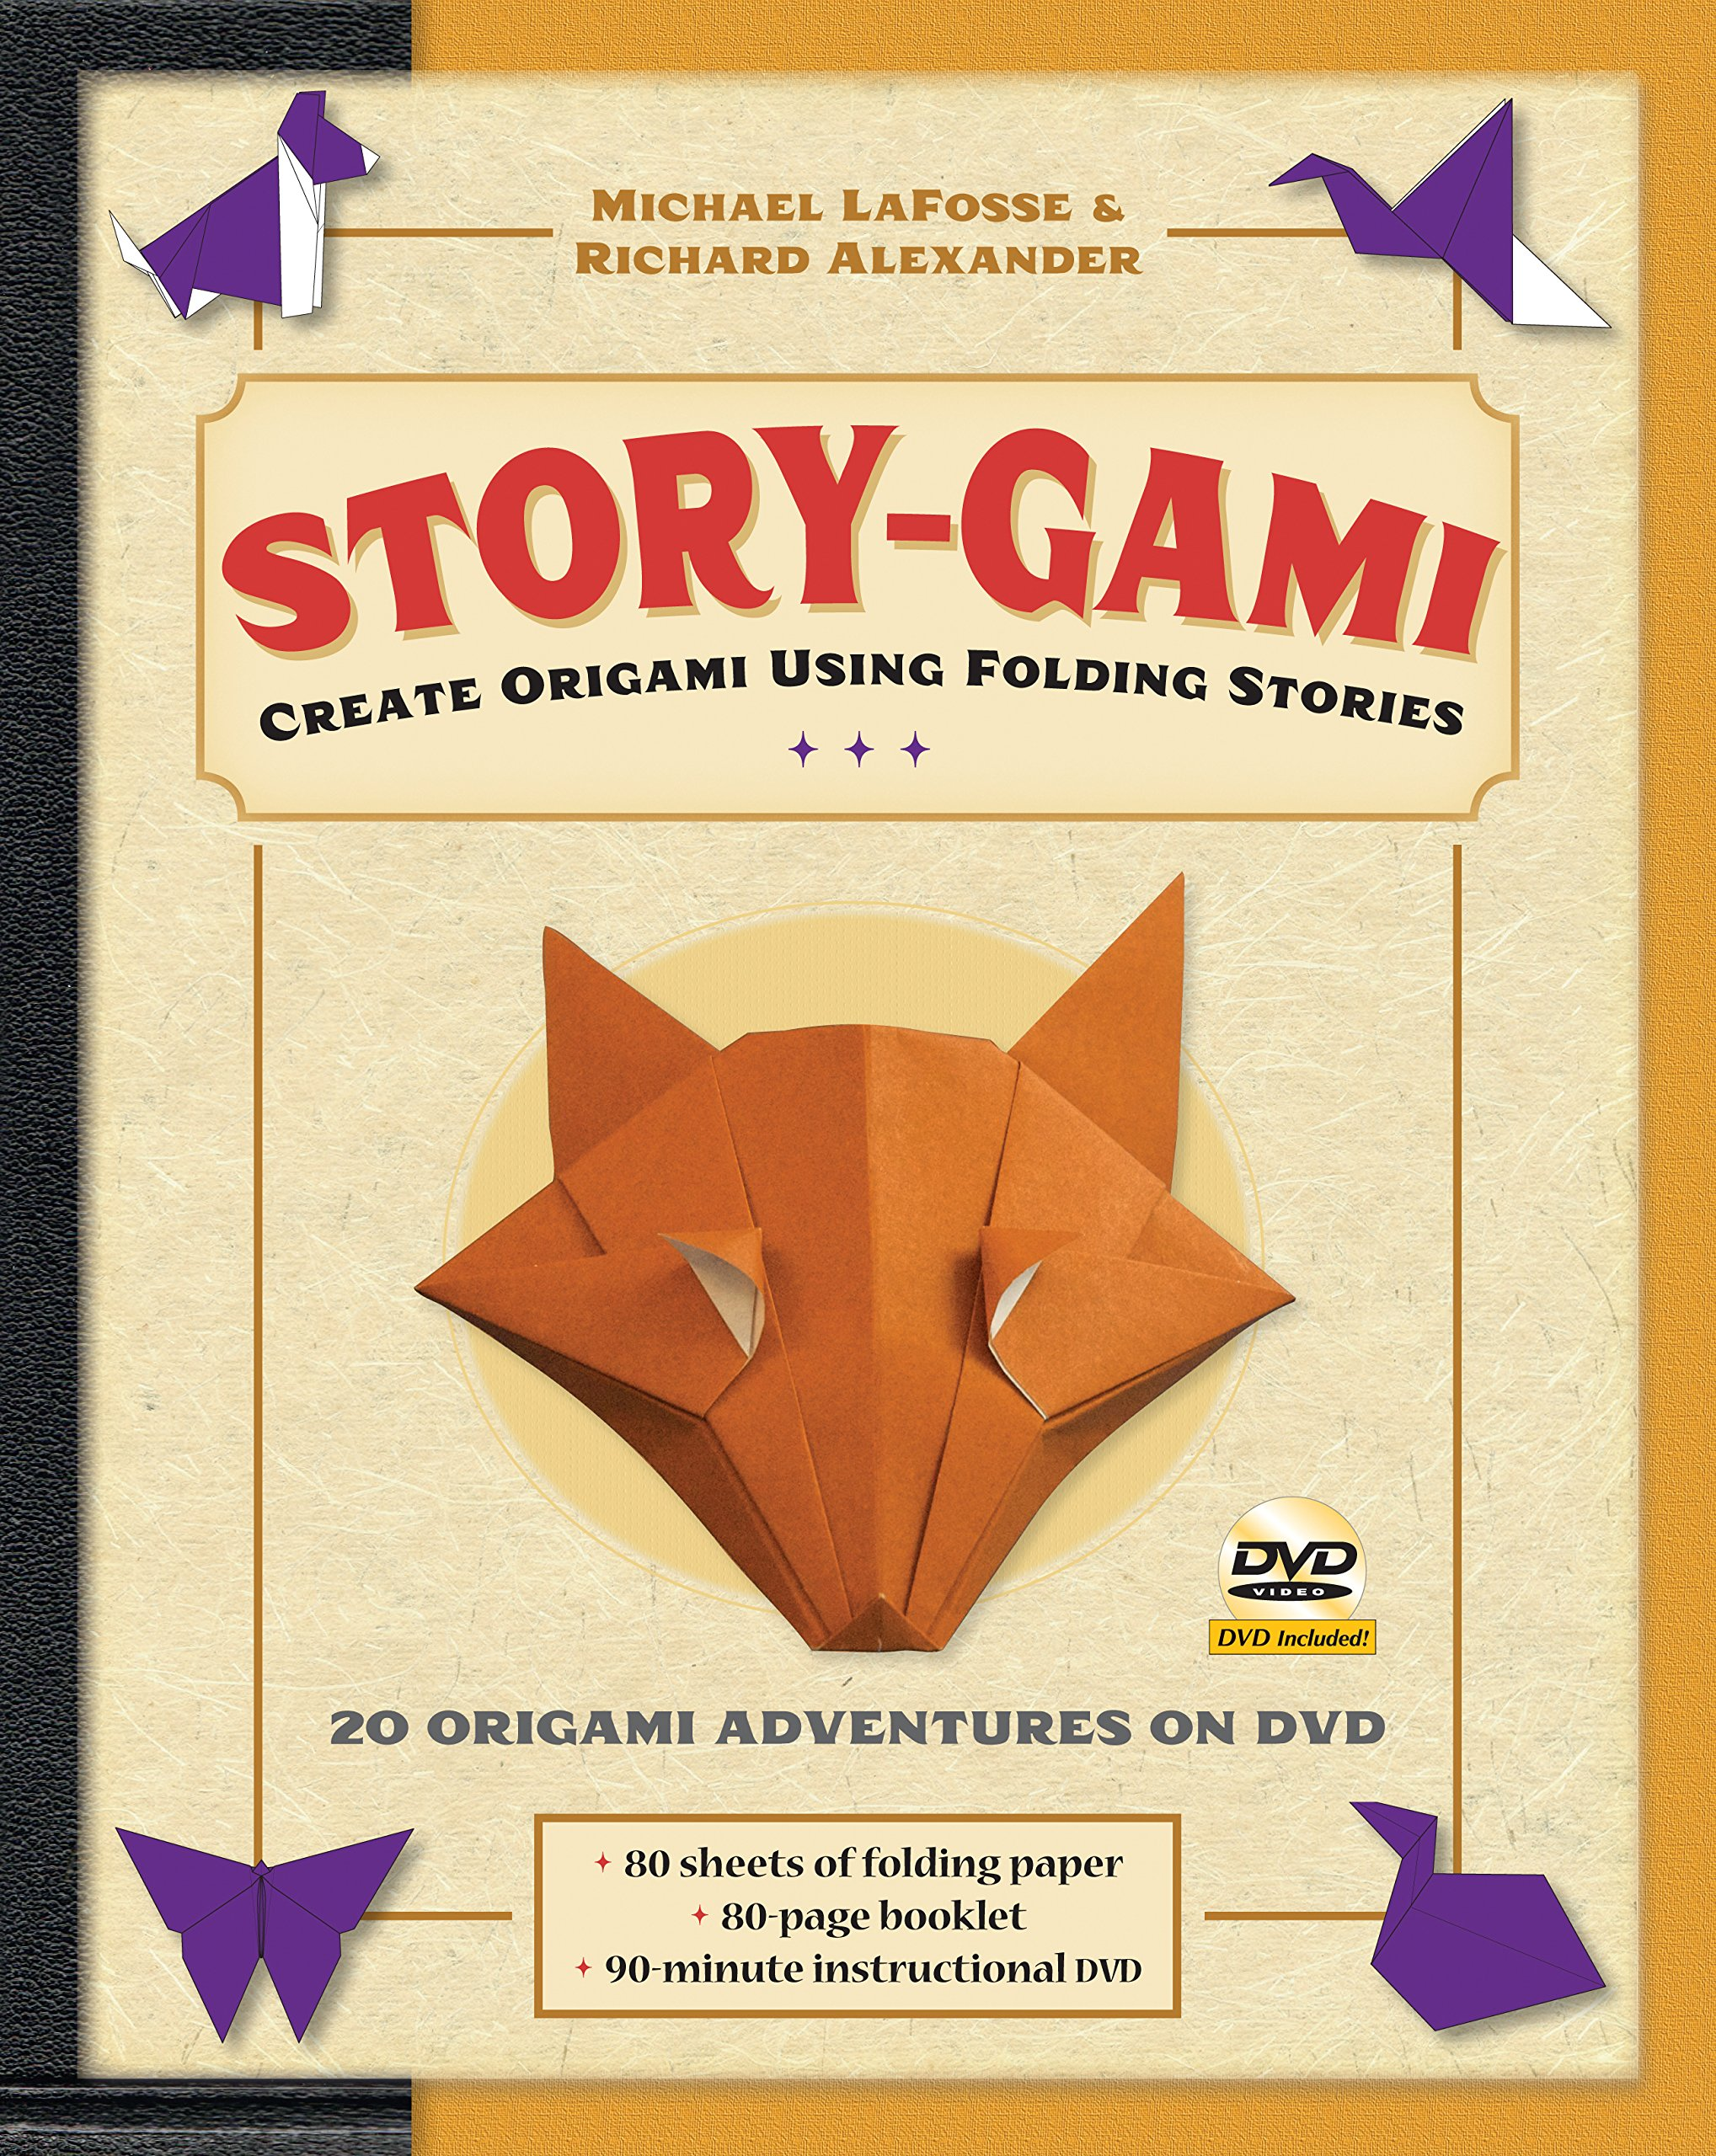 Story Gami Kit Create Origami Using Folding Stories Dogeasy Dogorigami Dog Diagrammoney With Book 18 Fun Projects 80 High Quality Papers And Instructional